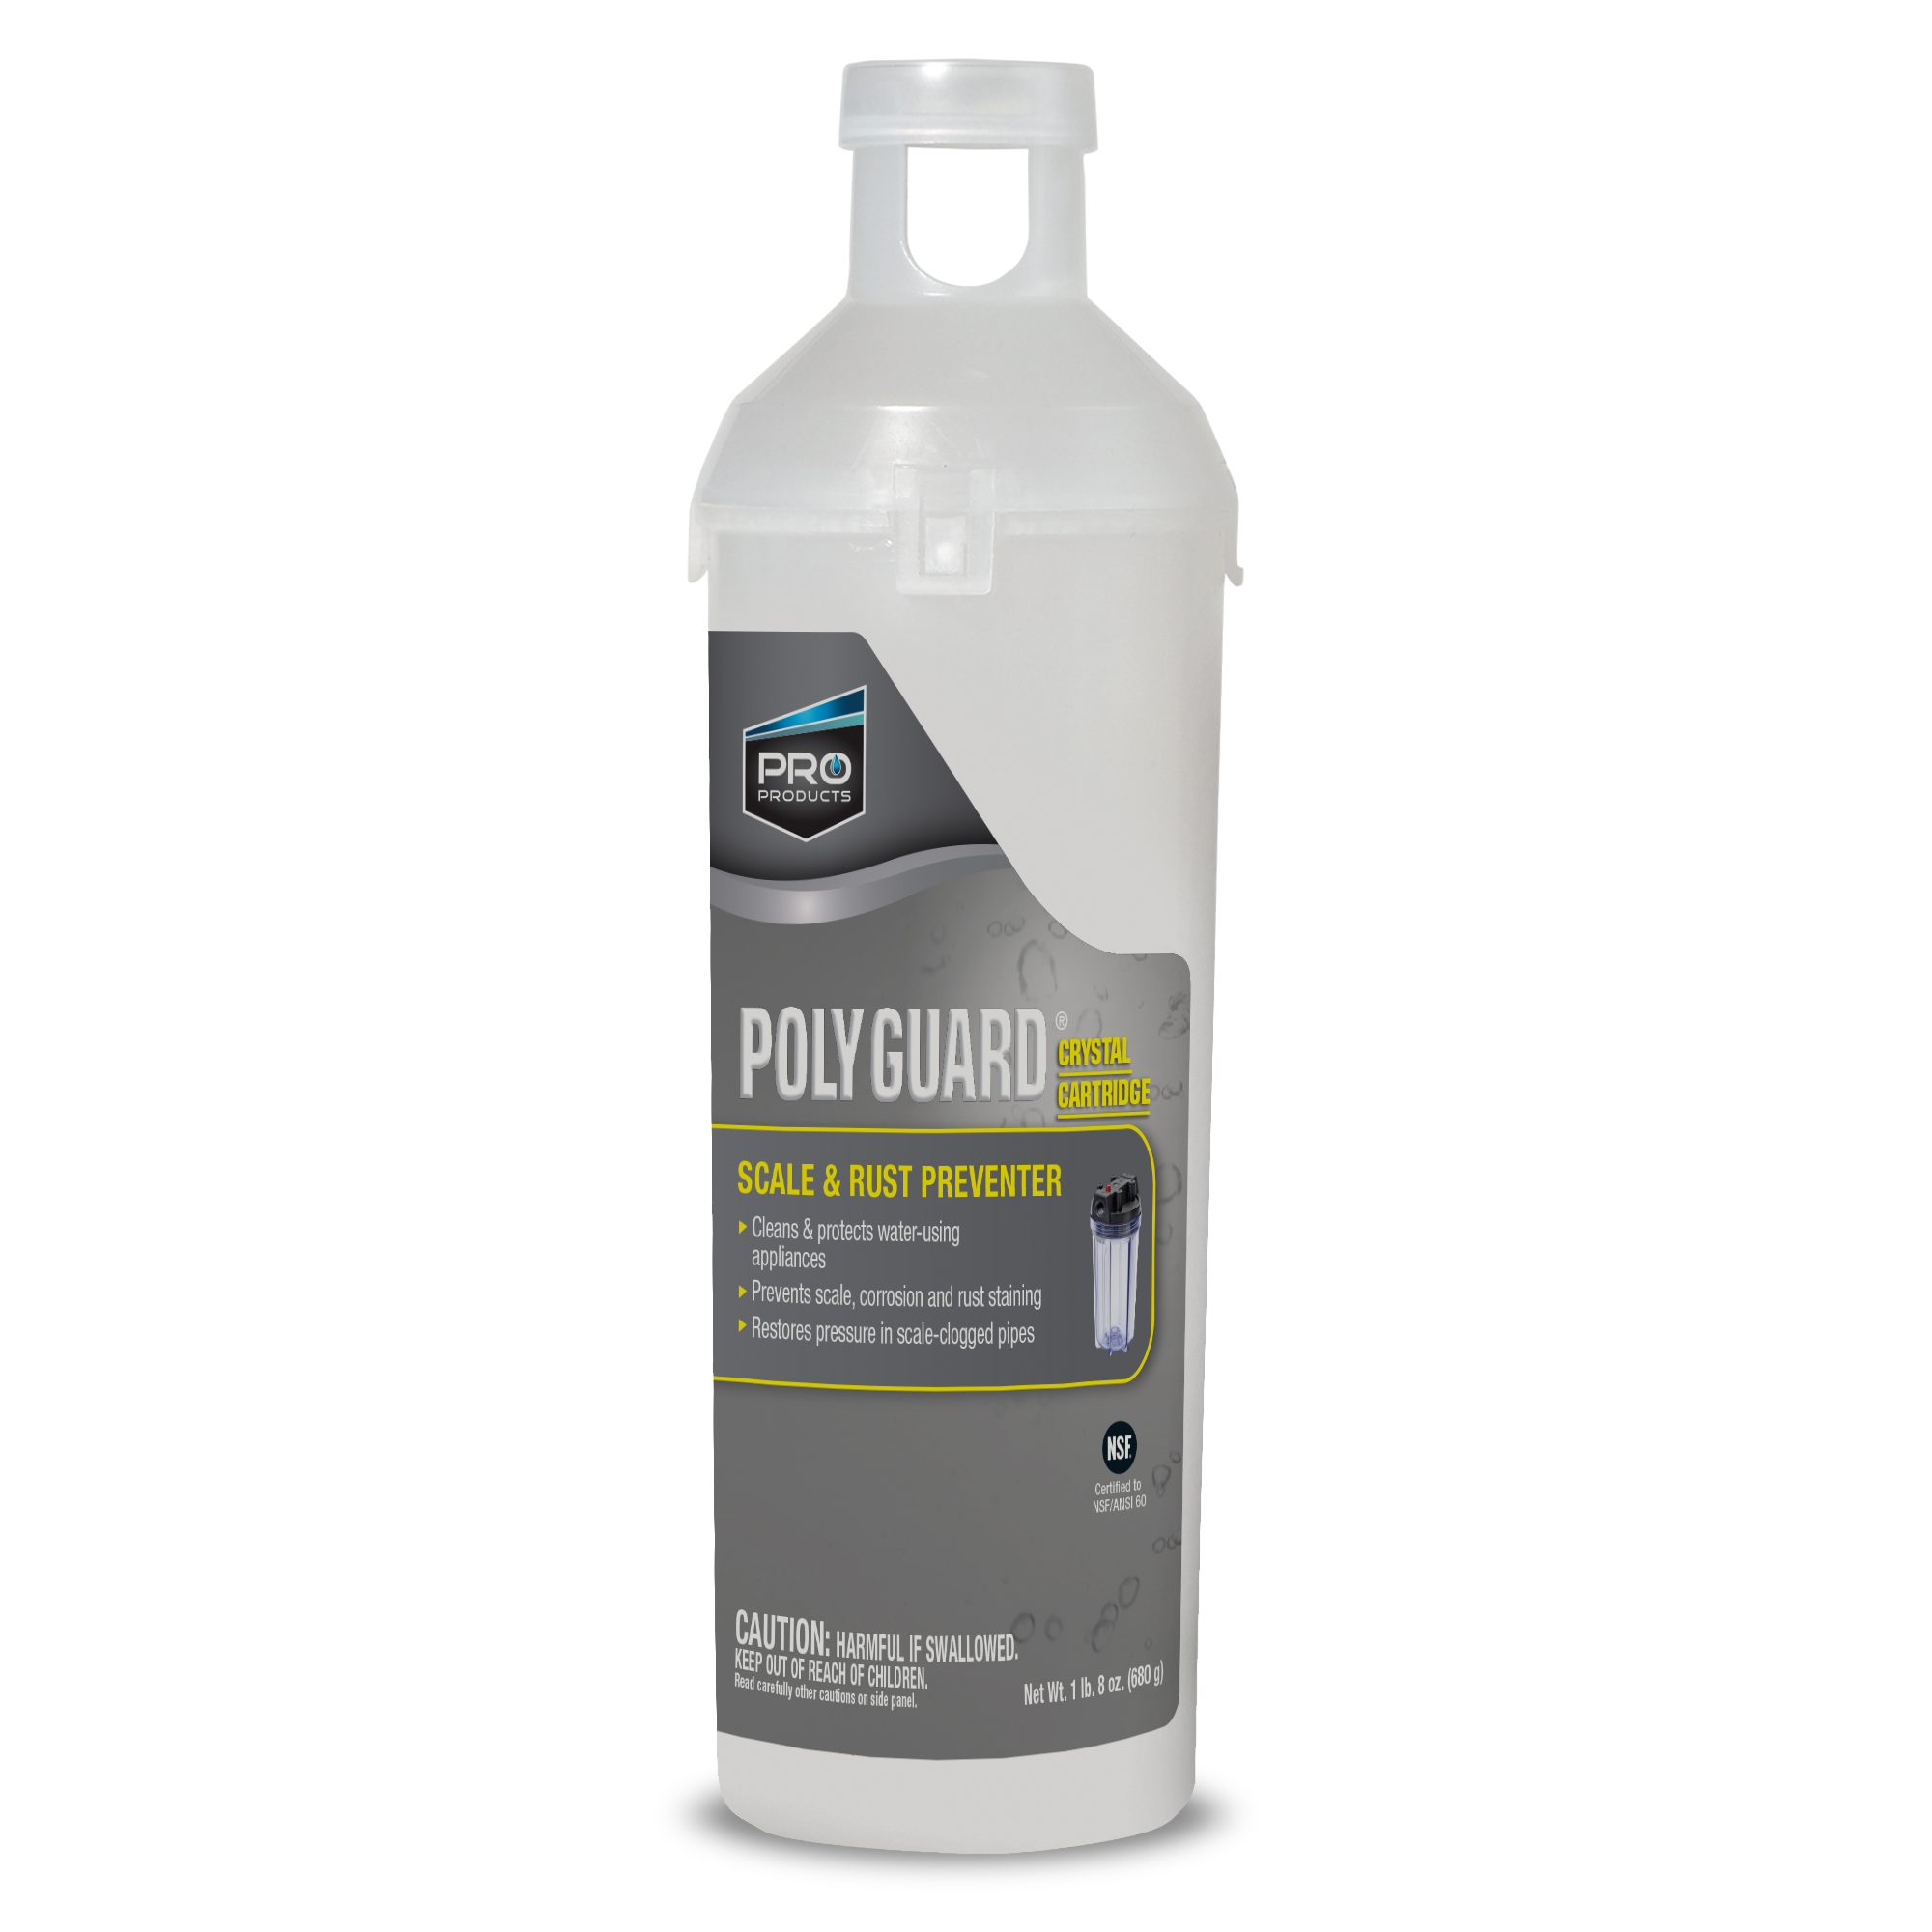 Poly Guard 174 Crystal Cartridge Pro Products